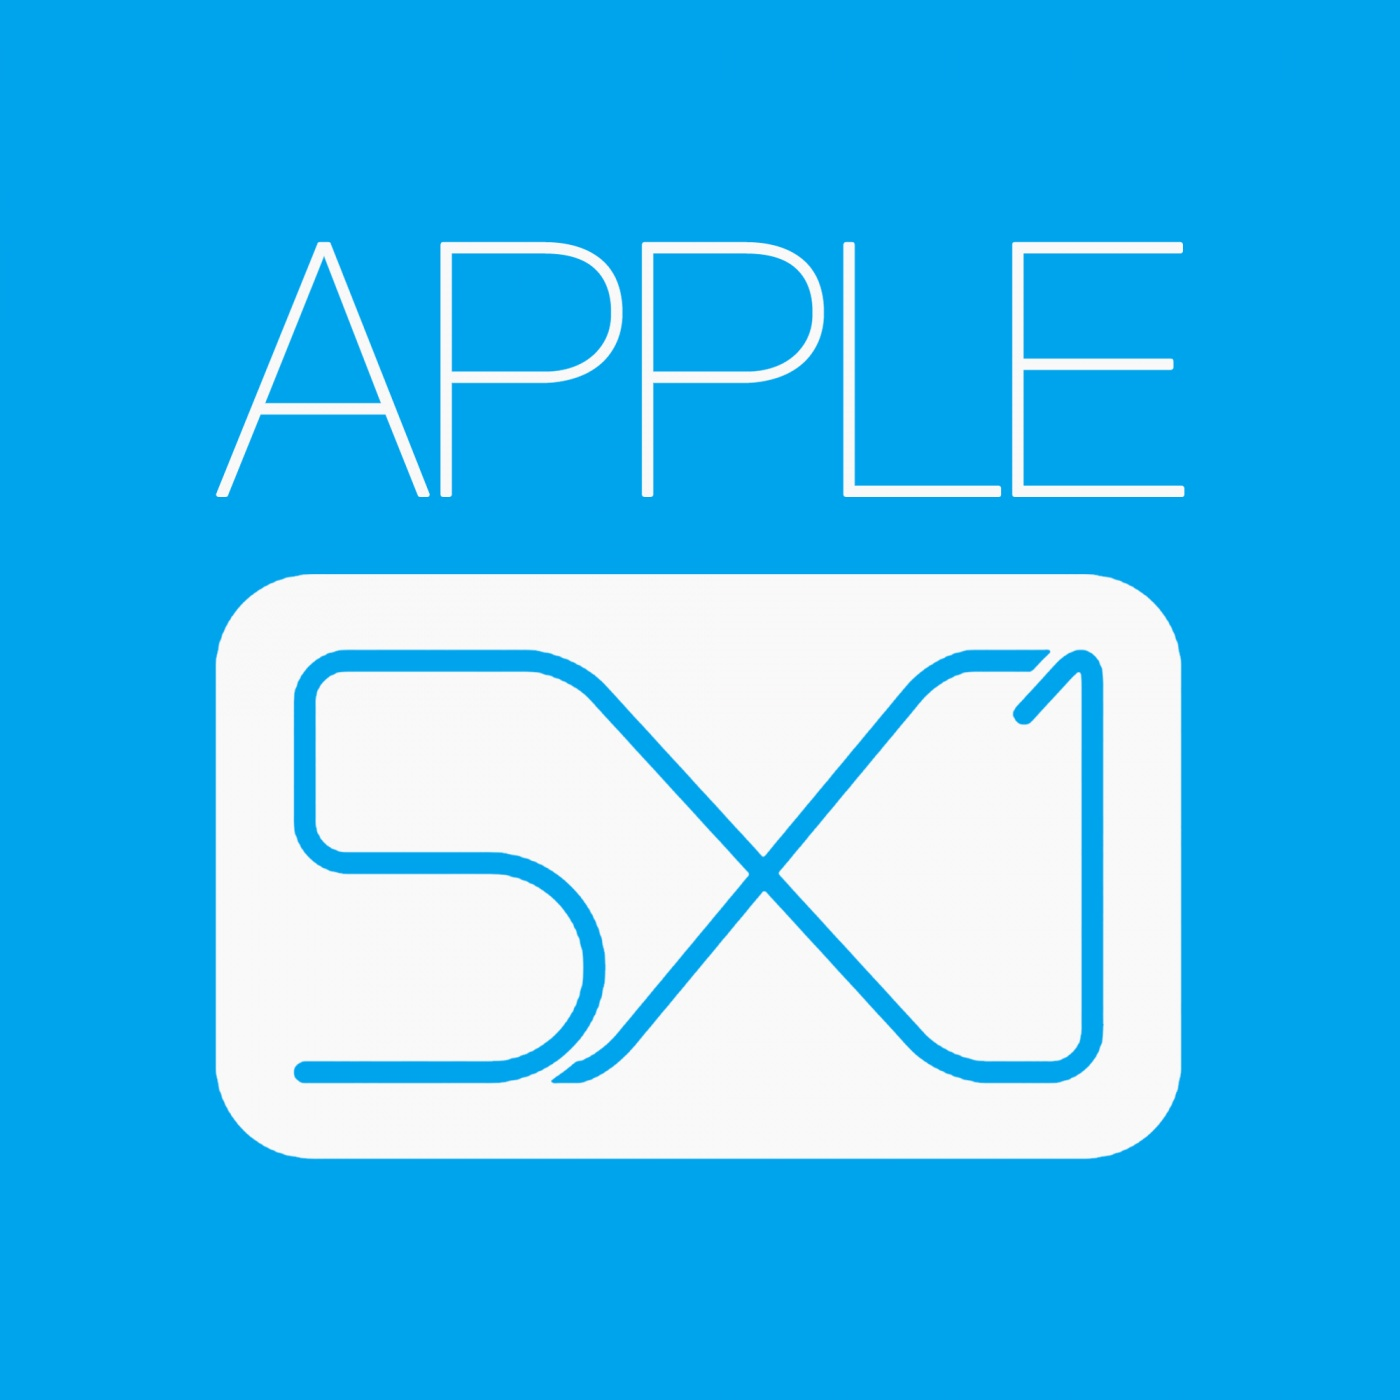 Logo de Apple 5x1